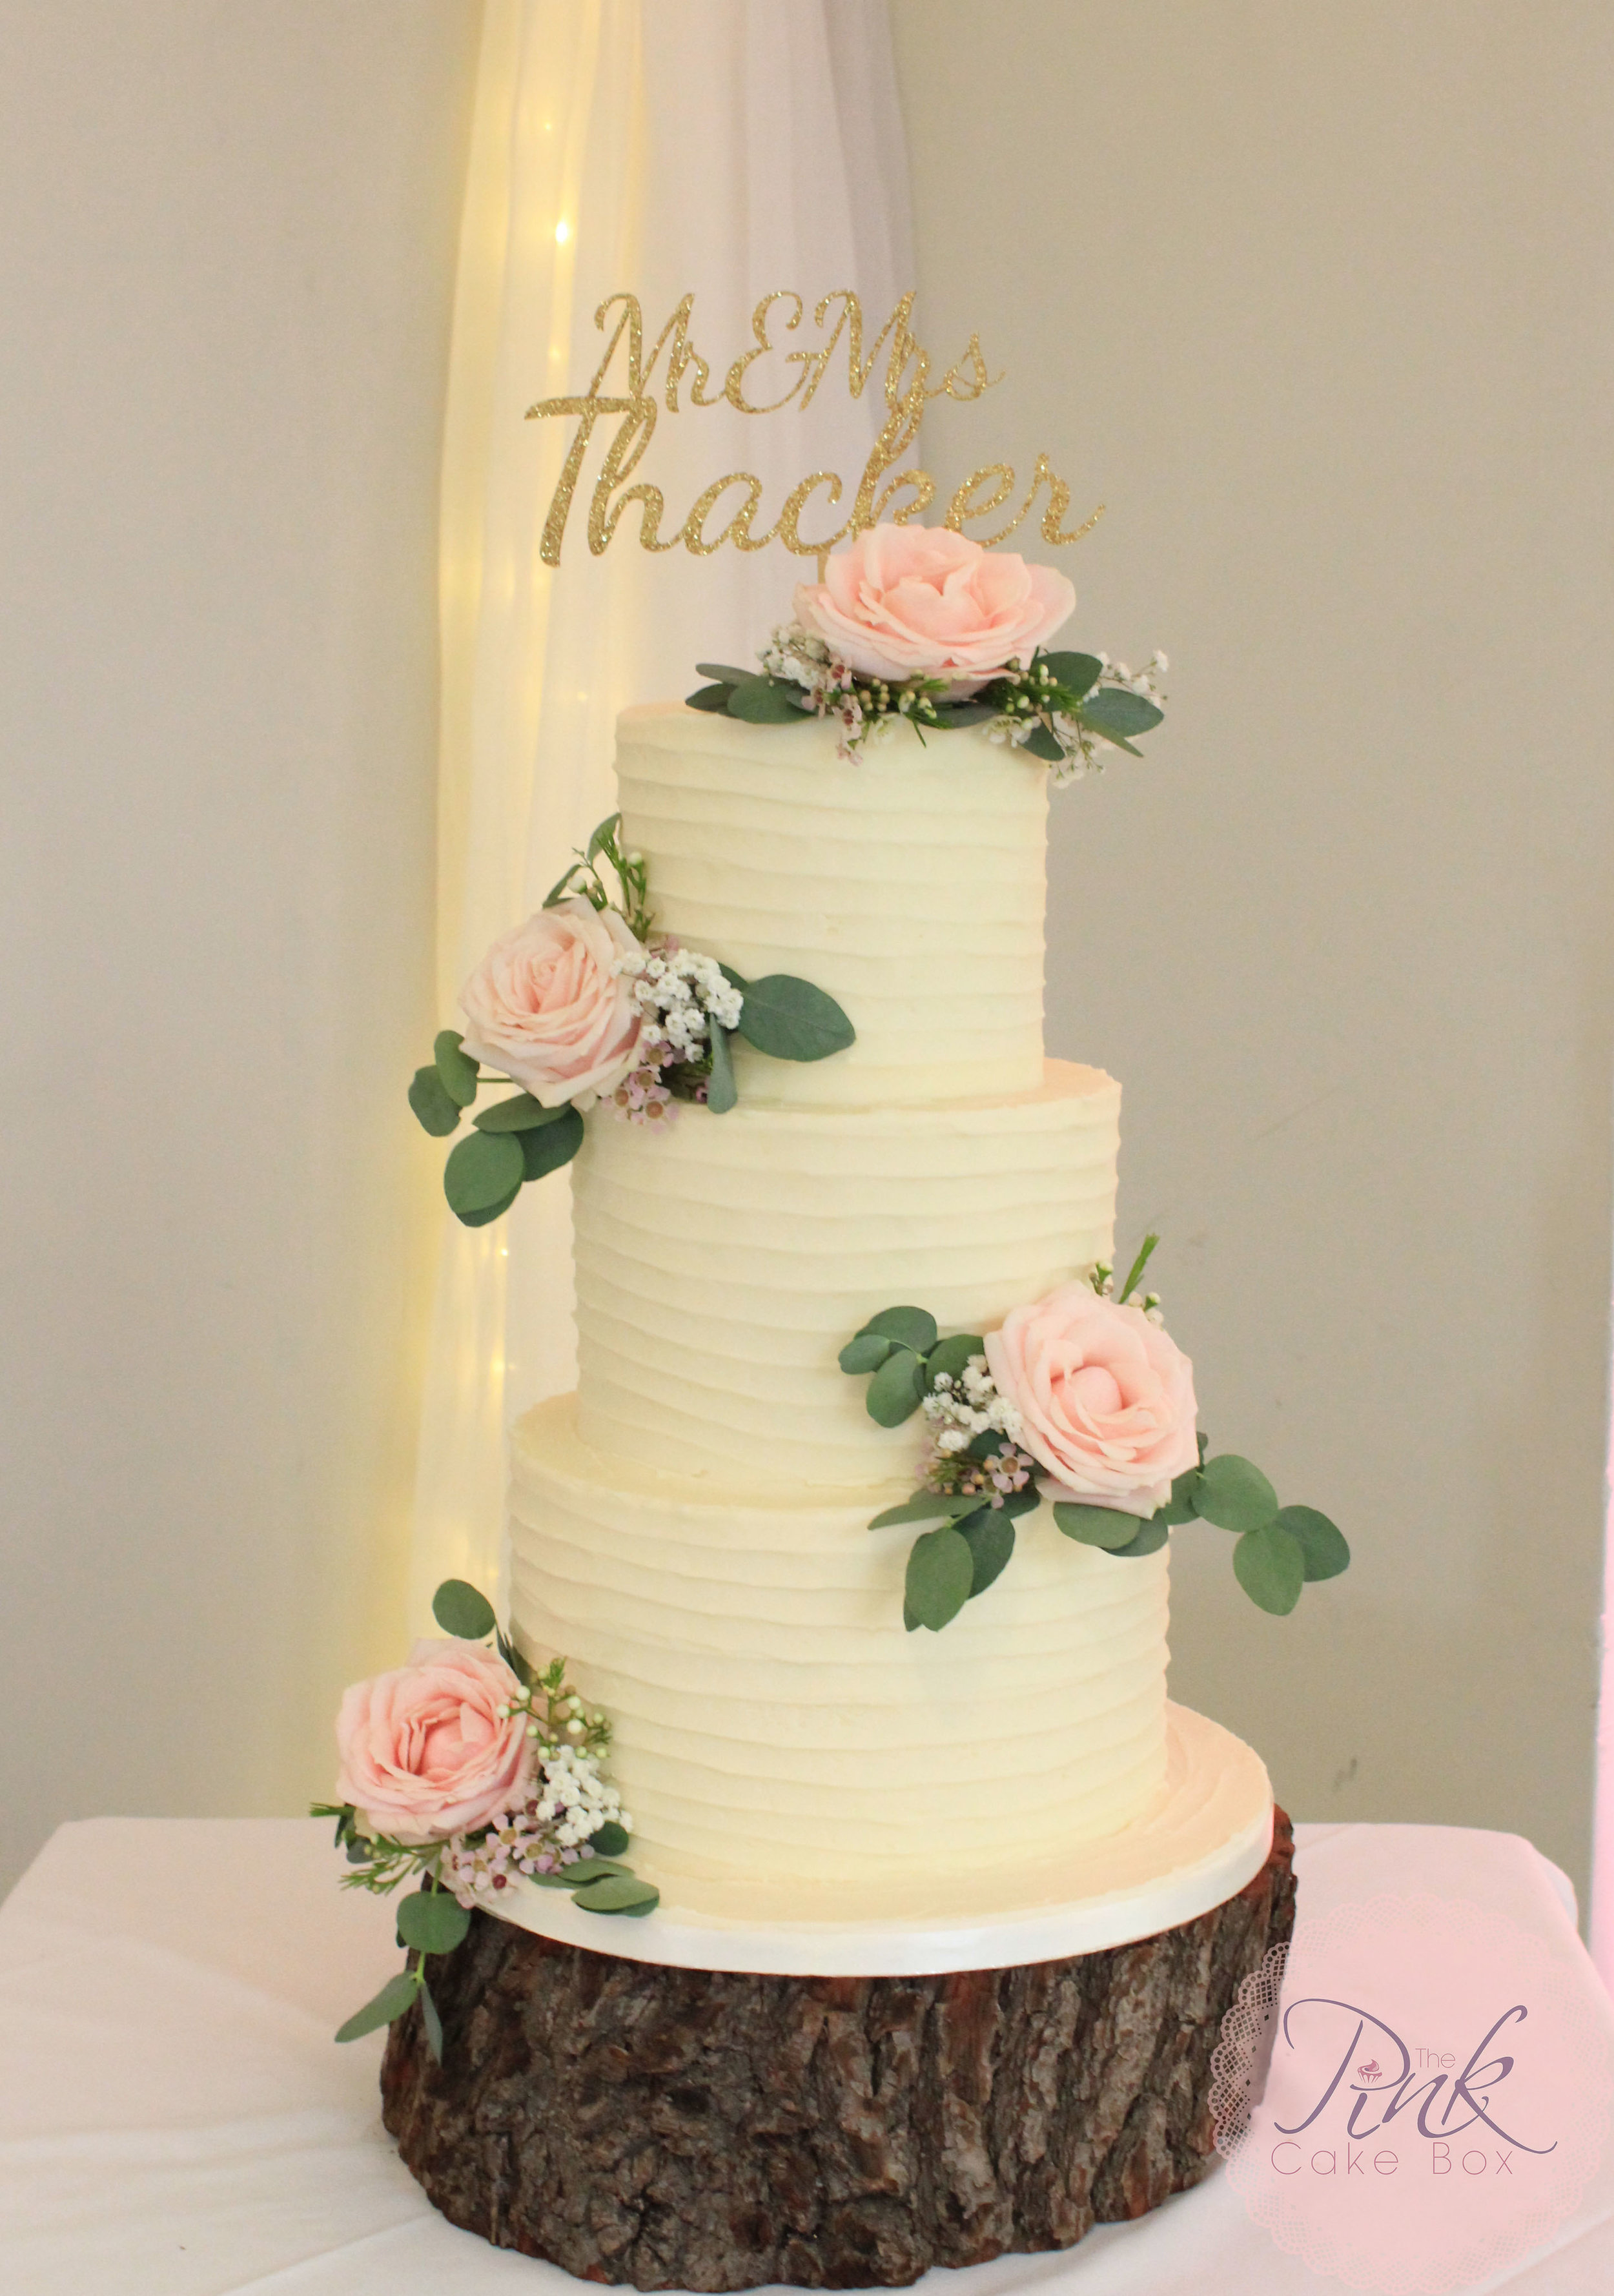 Buttercream Wedding Cakes     The Pink Cake Box Wedding Cake Design Buttercream wedding cake with soft blush fresh flowers to match the bouquets